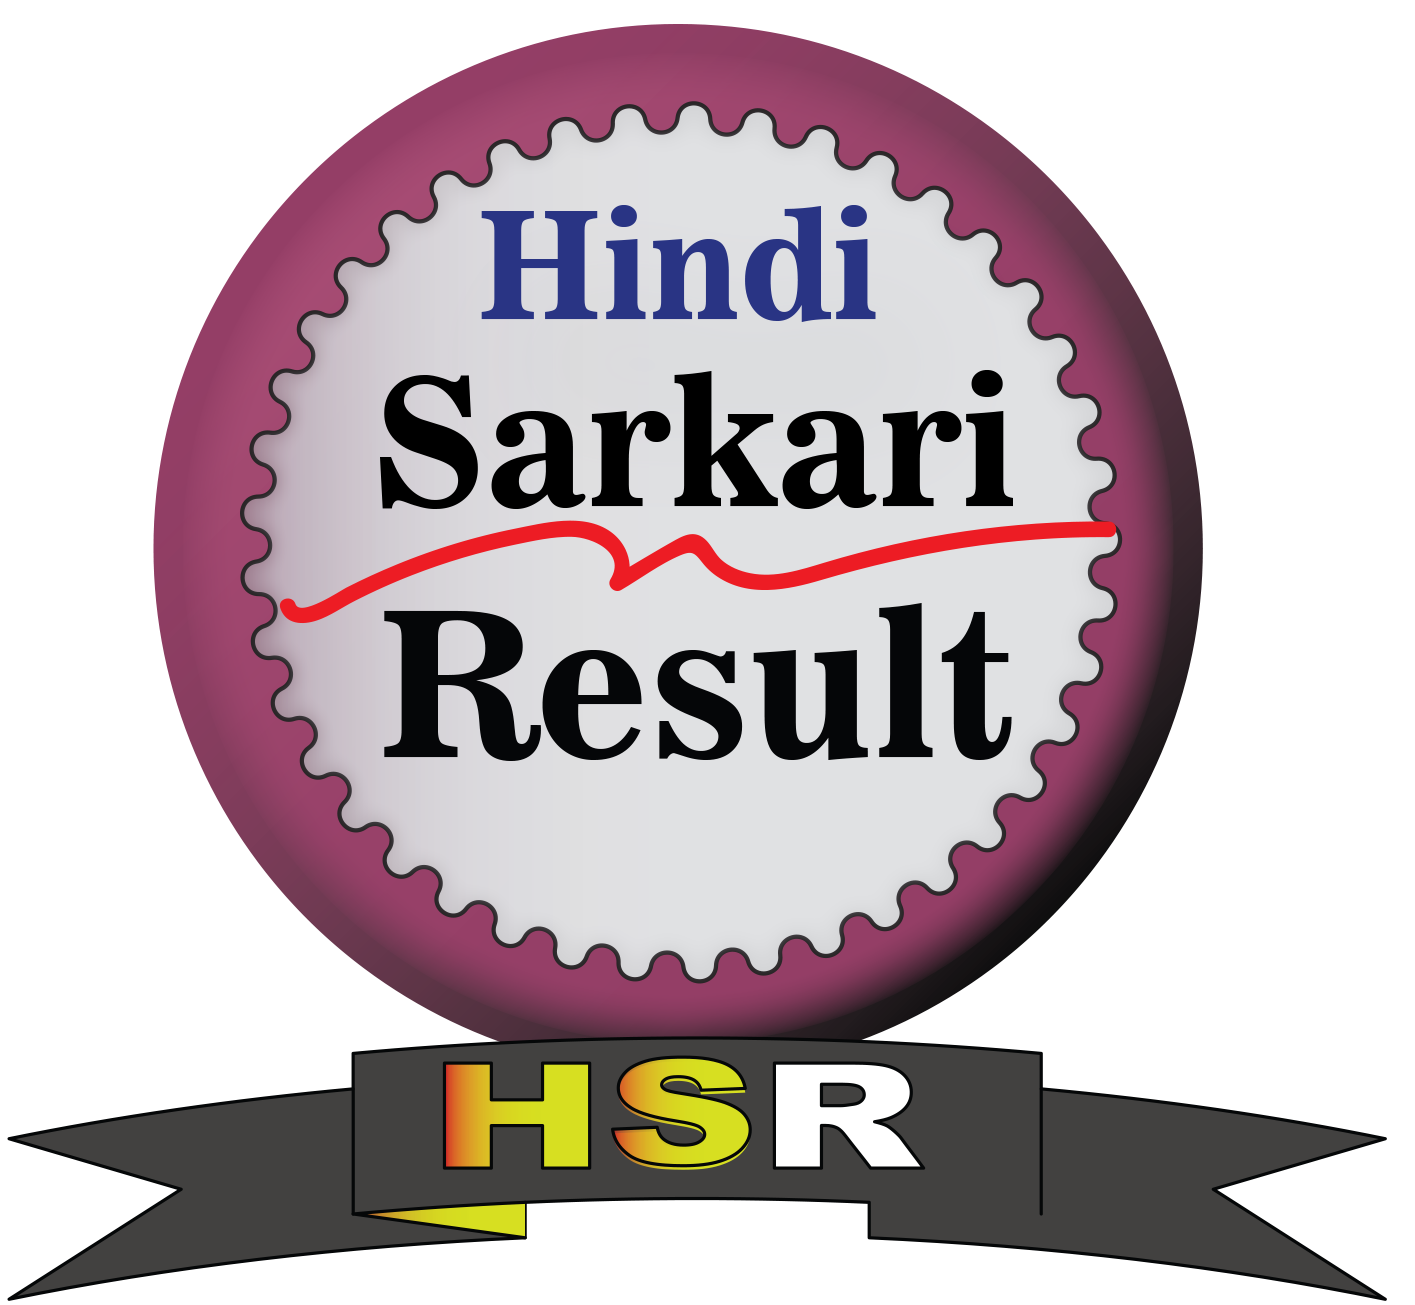 Dailysarkariresult.com